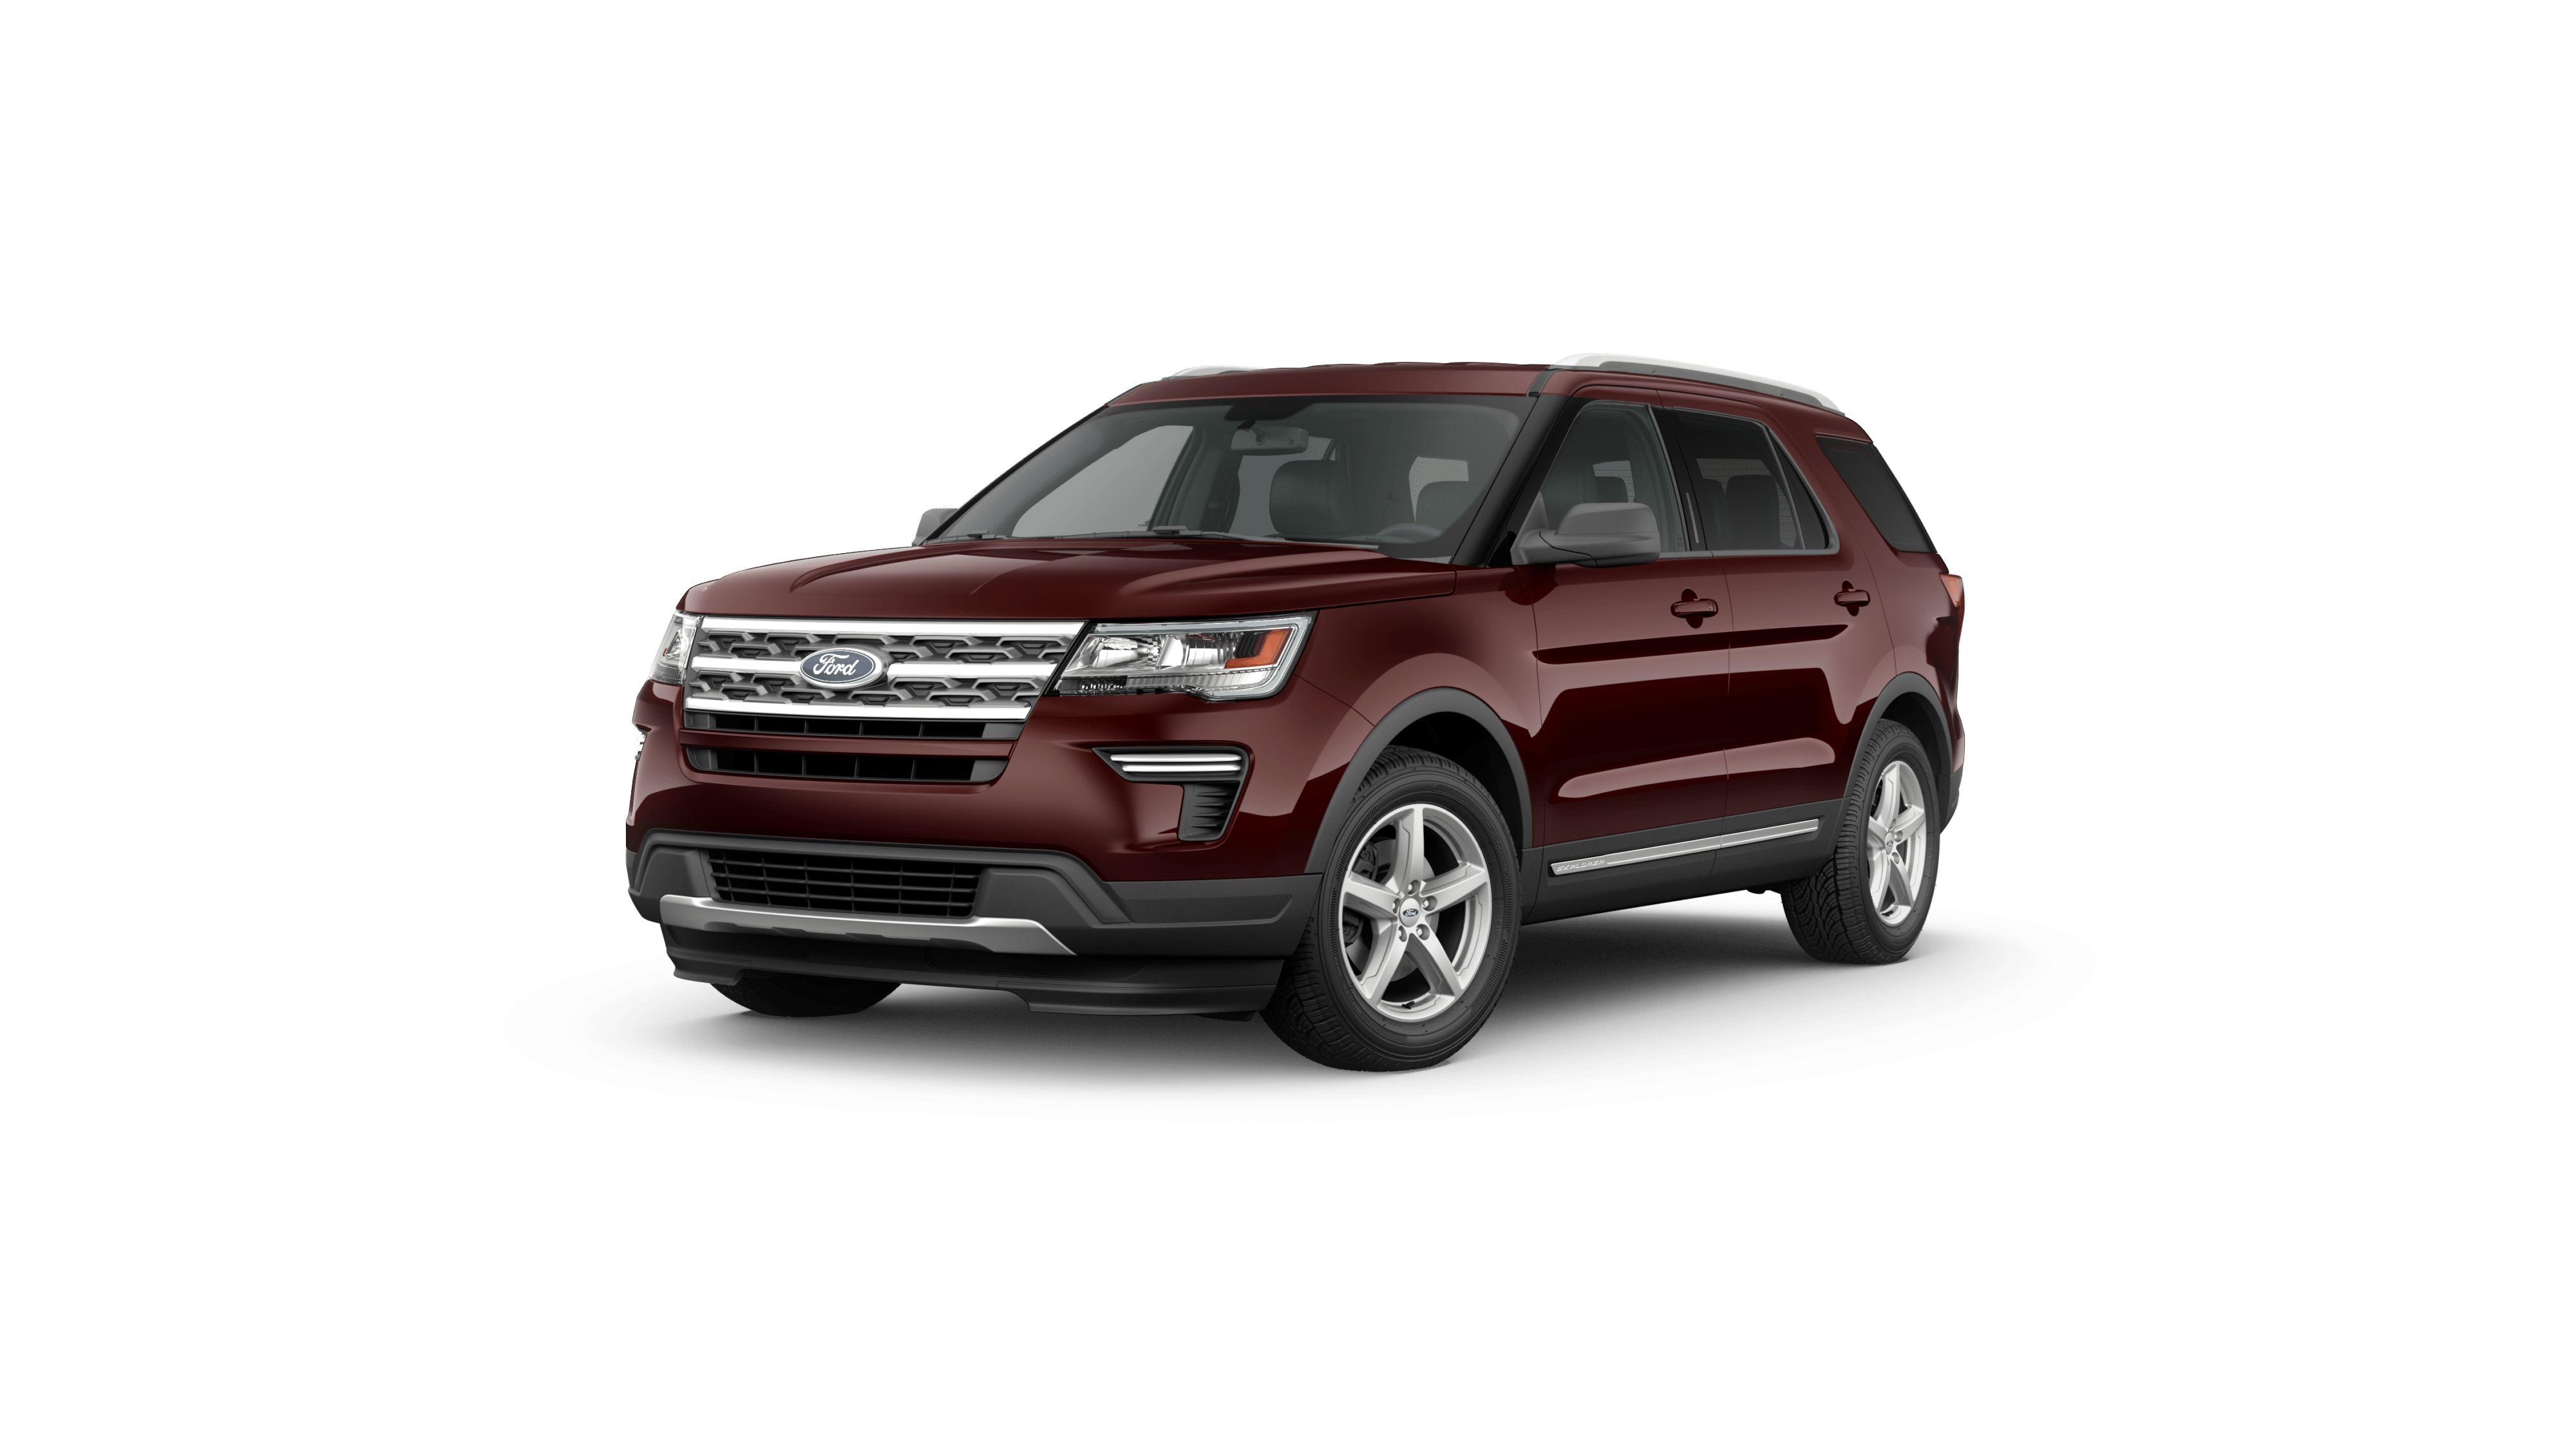 2019 Ford Explorer for sale in Okmulgee.